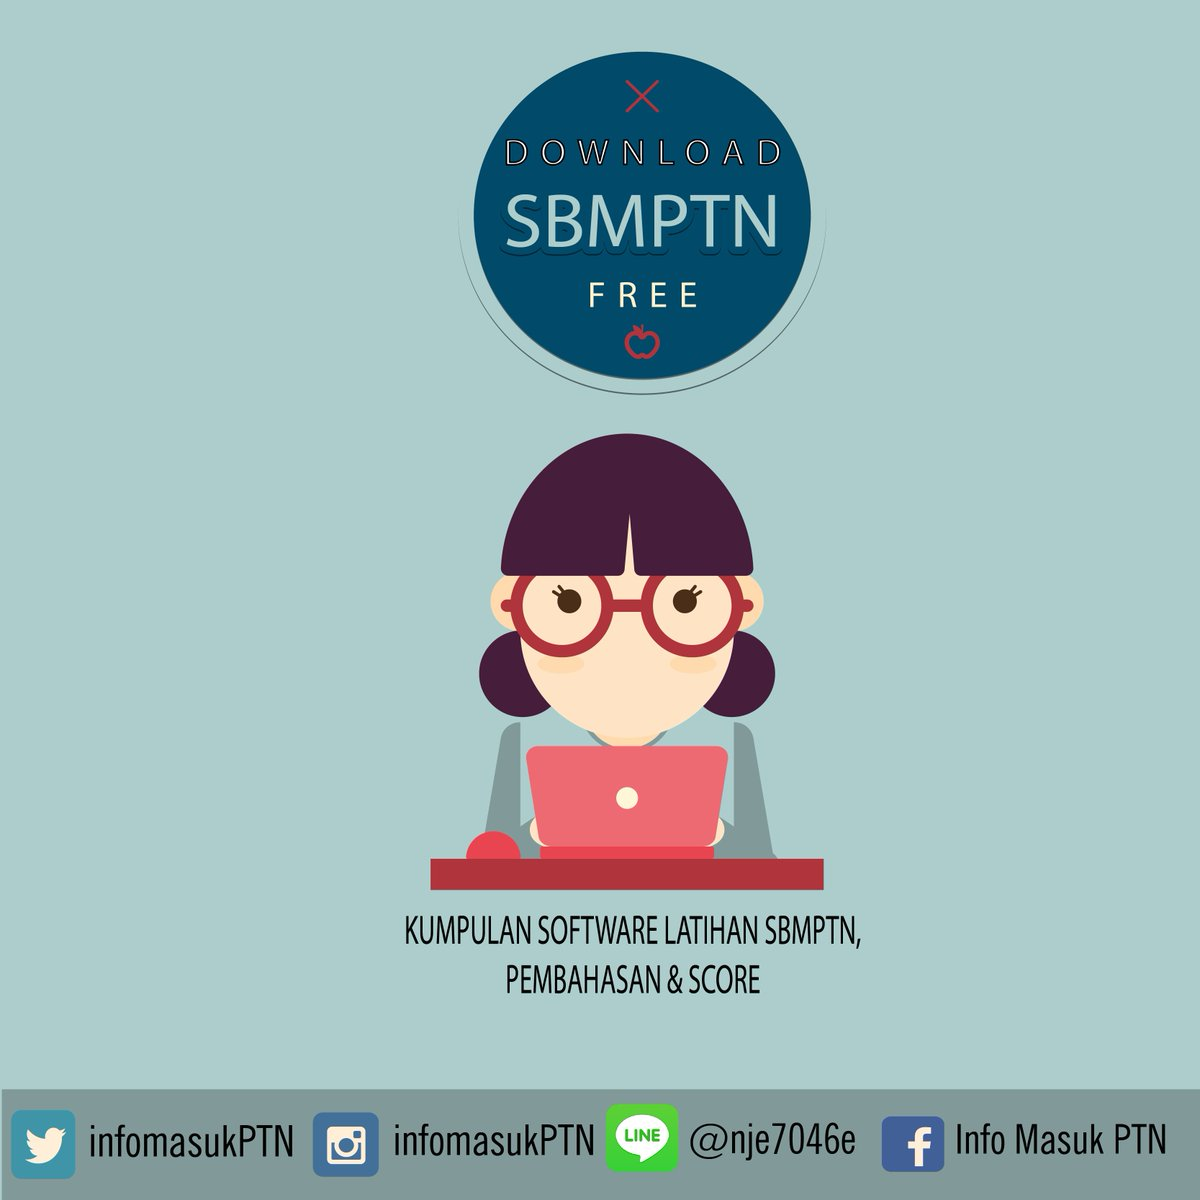 Kunci sukses snmptn for android apk download.